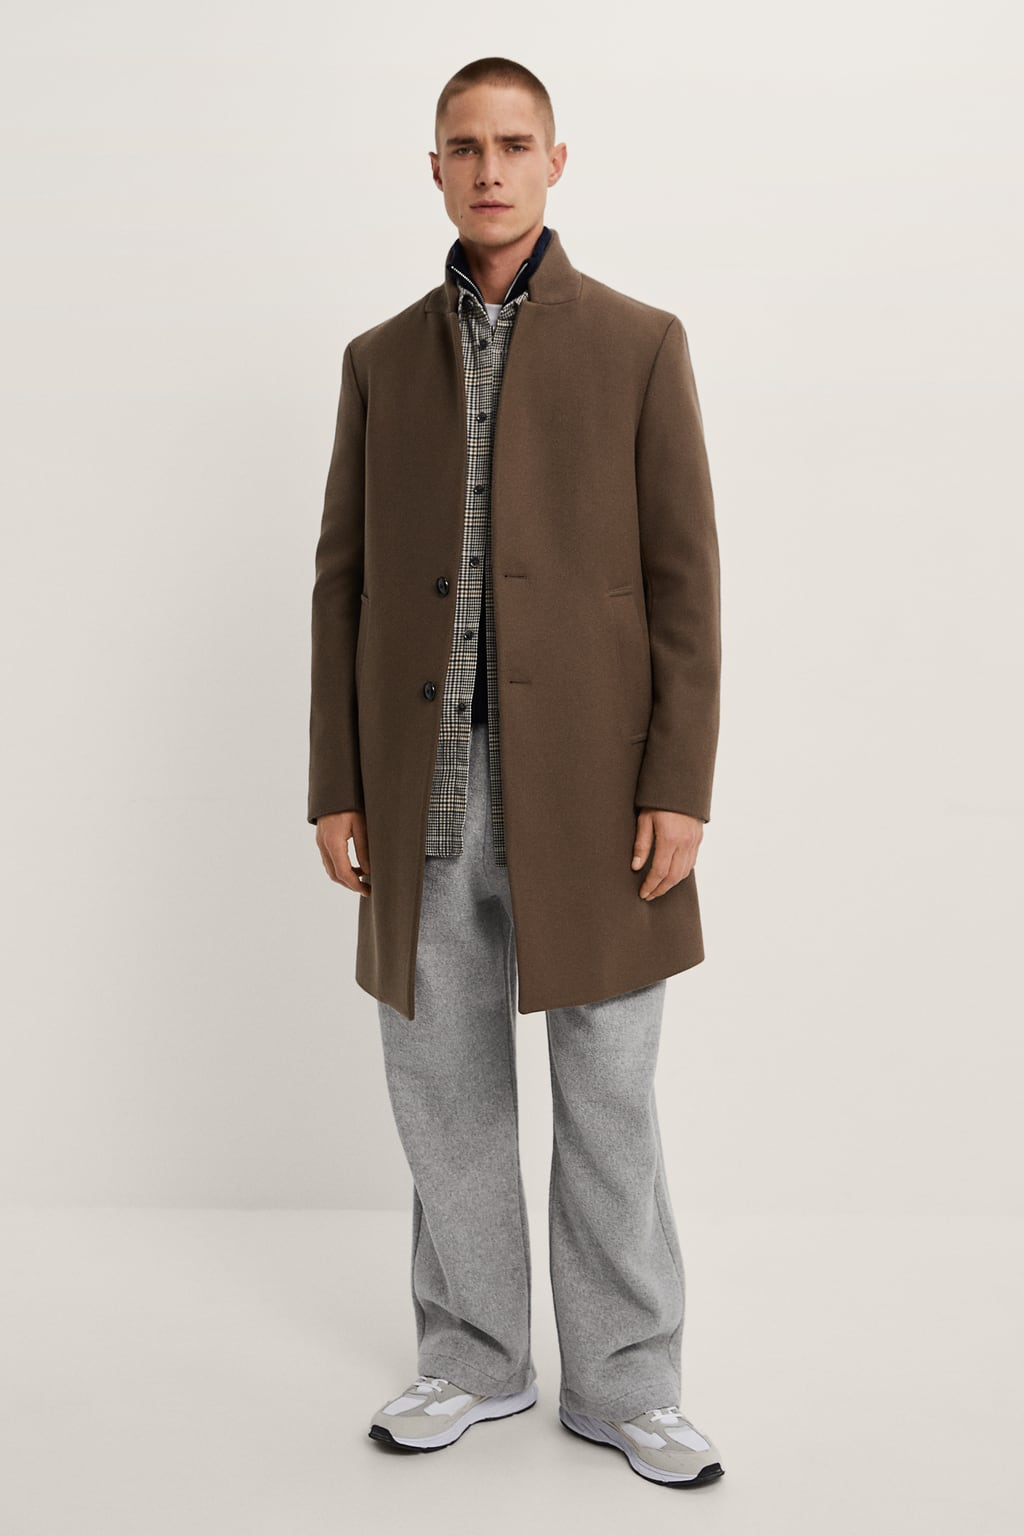 The Best Overcoats to Wear During Autumn Winter | Inverted lapel collar from Zara